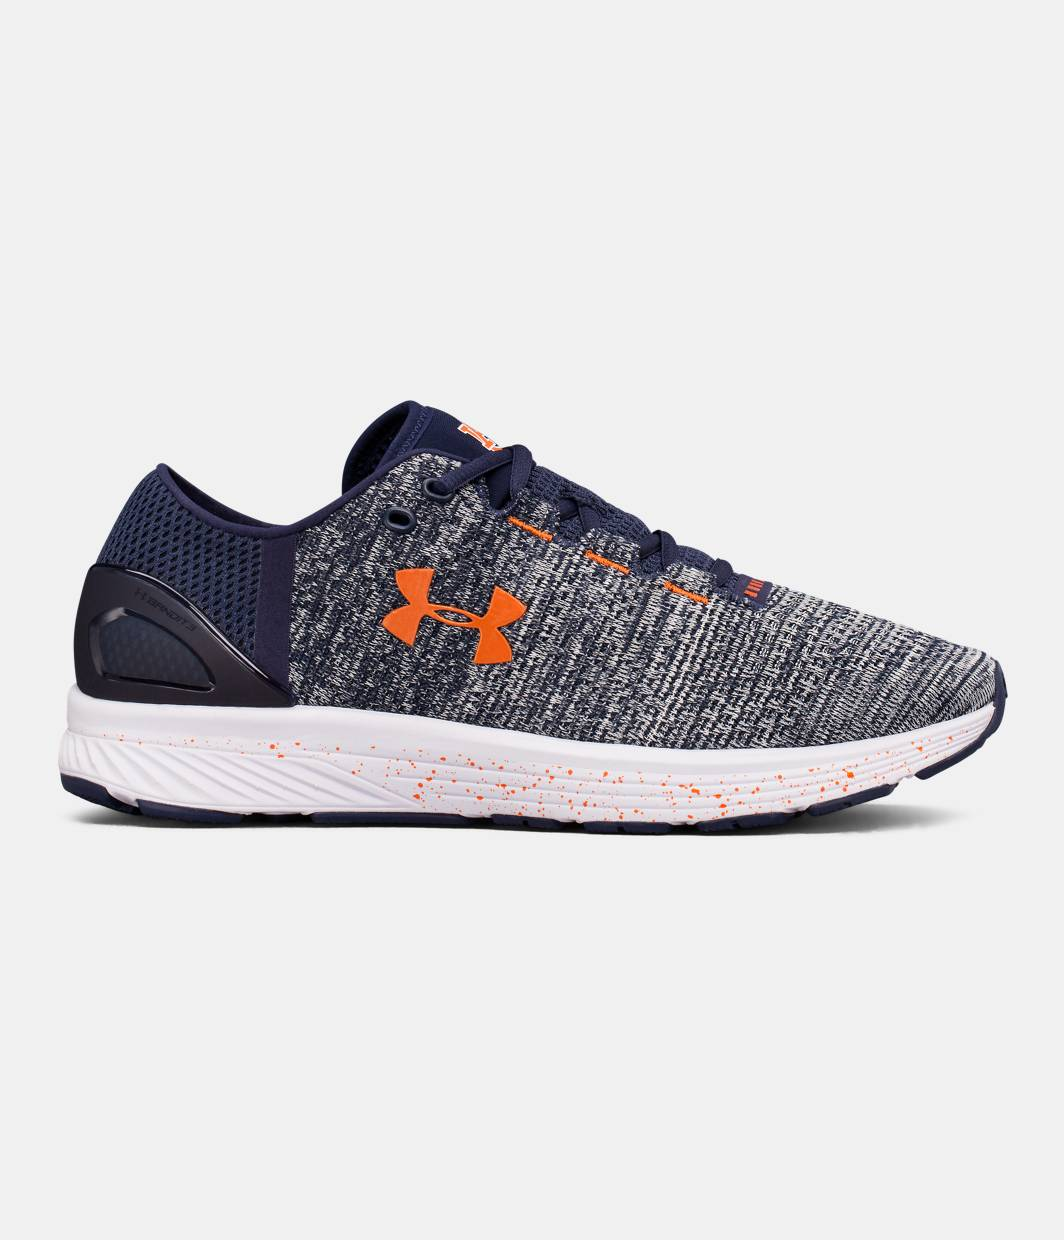 Under Armour Auburn Running Shoes